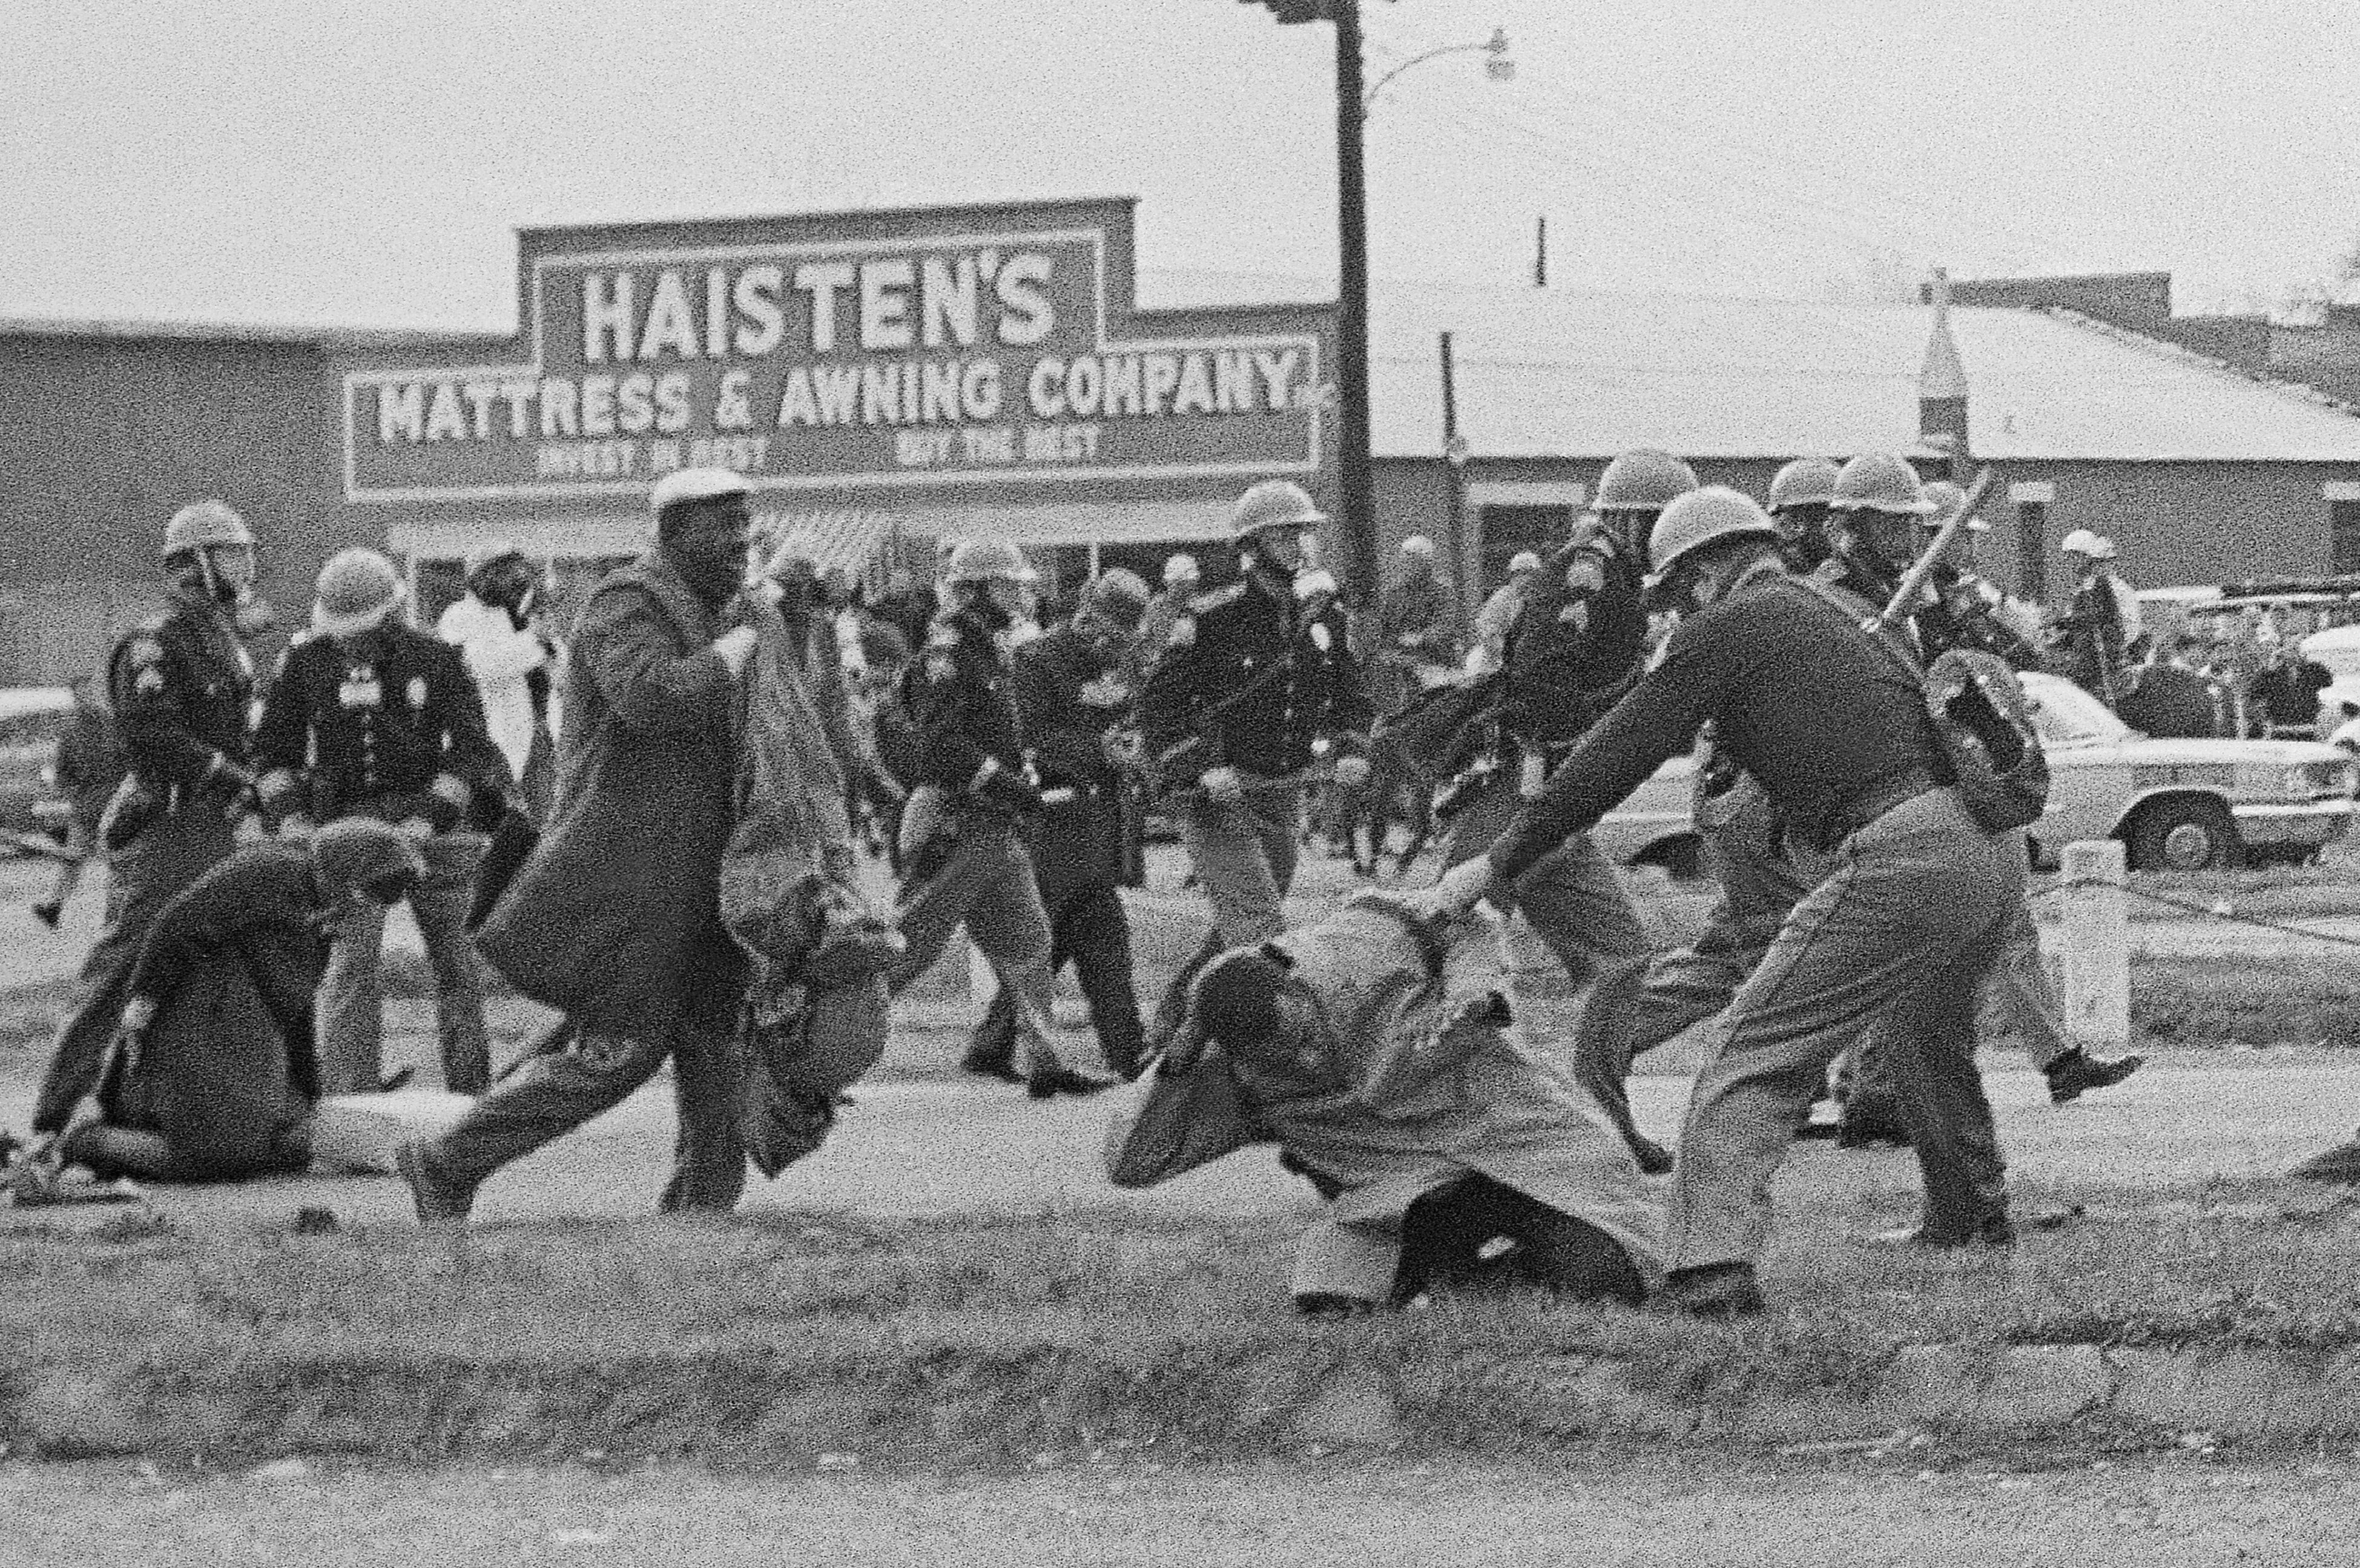 In this March 7, 1965, file photo, a state trooper swings a billy club at John Lewis, right foreground, chairman of the Student Nonviolent Coordinating Committee, to break up a civil rights voting march in Selma, Ala.